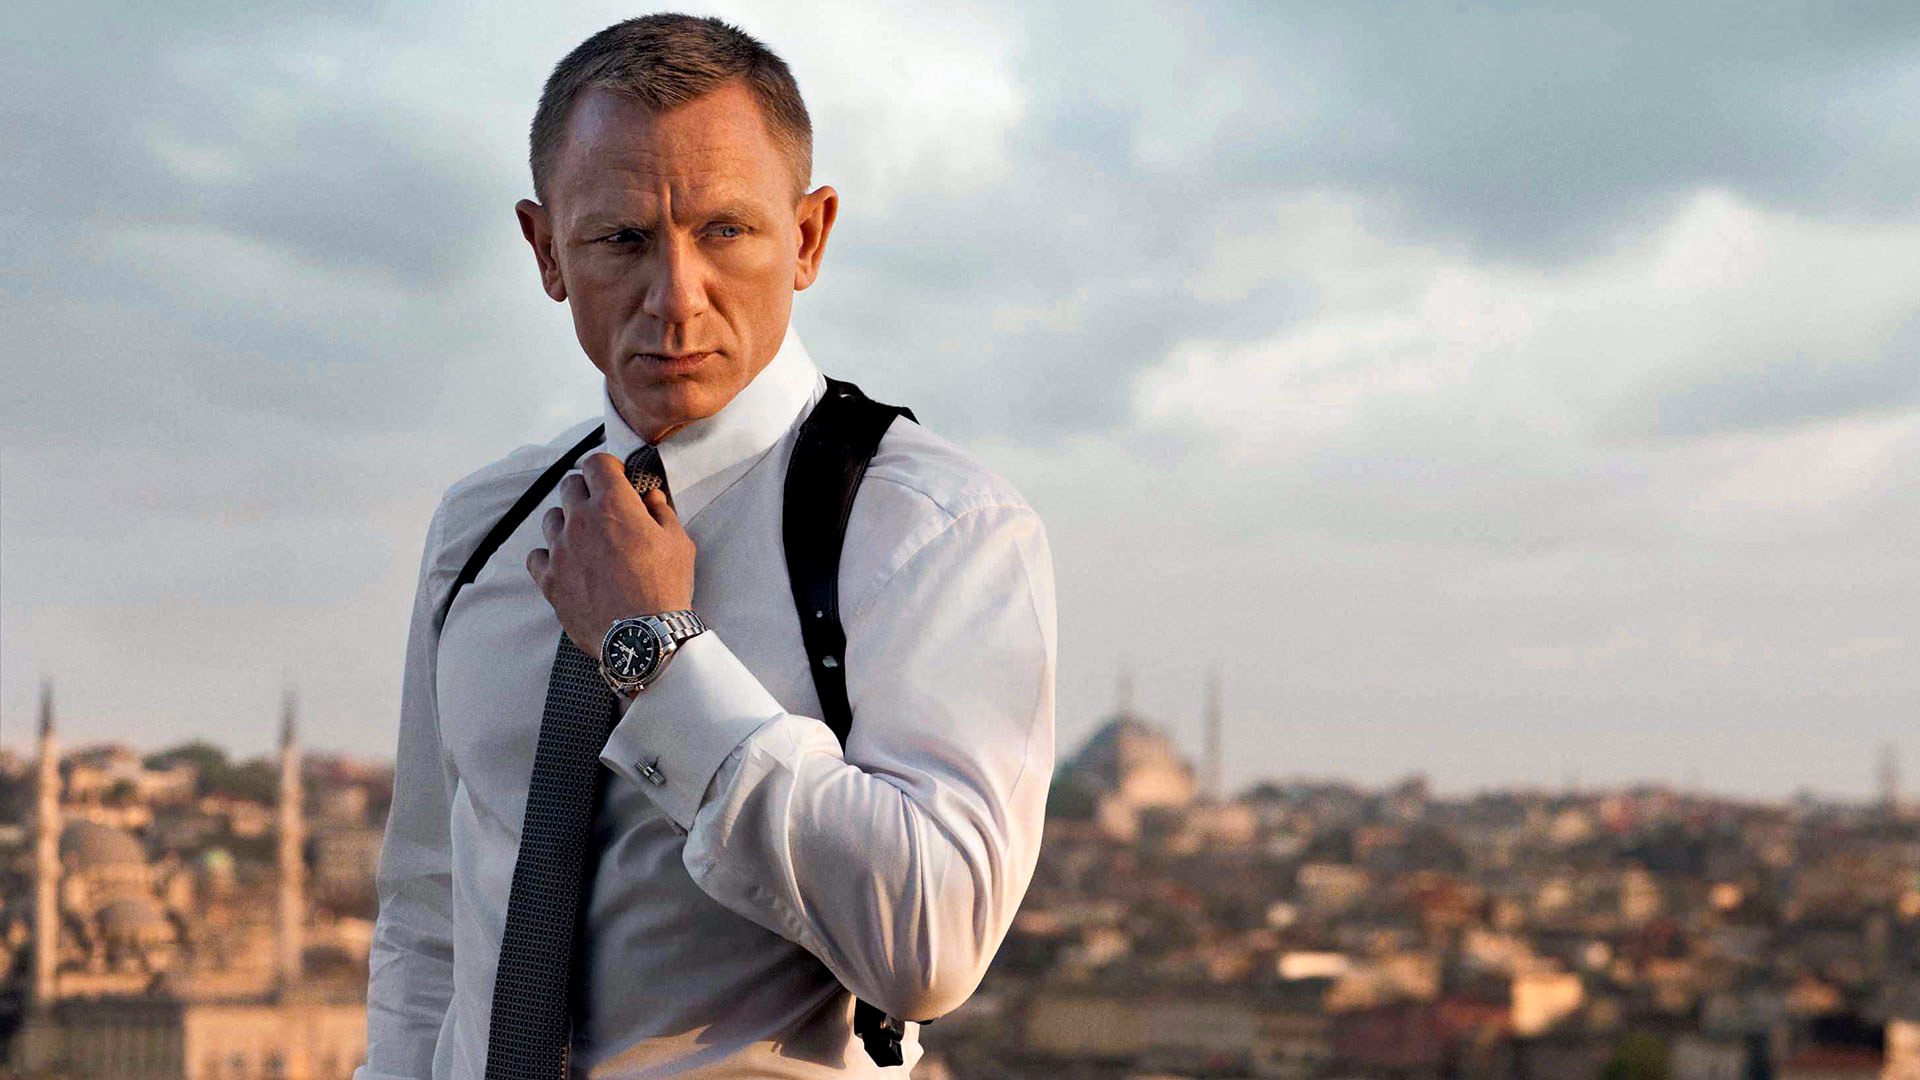 James Bond with the latest Omega watch